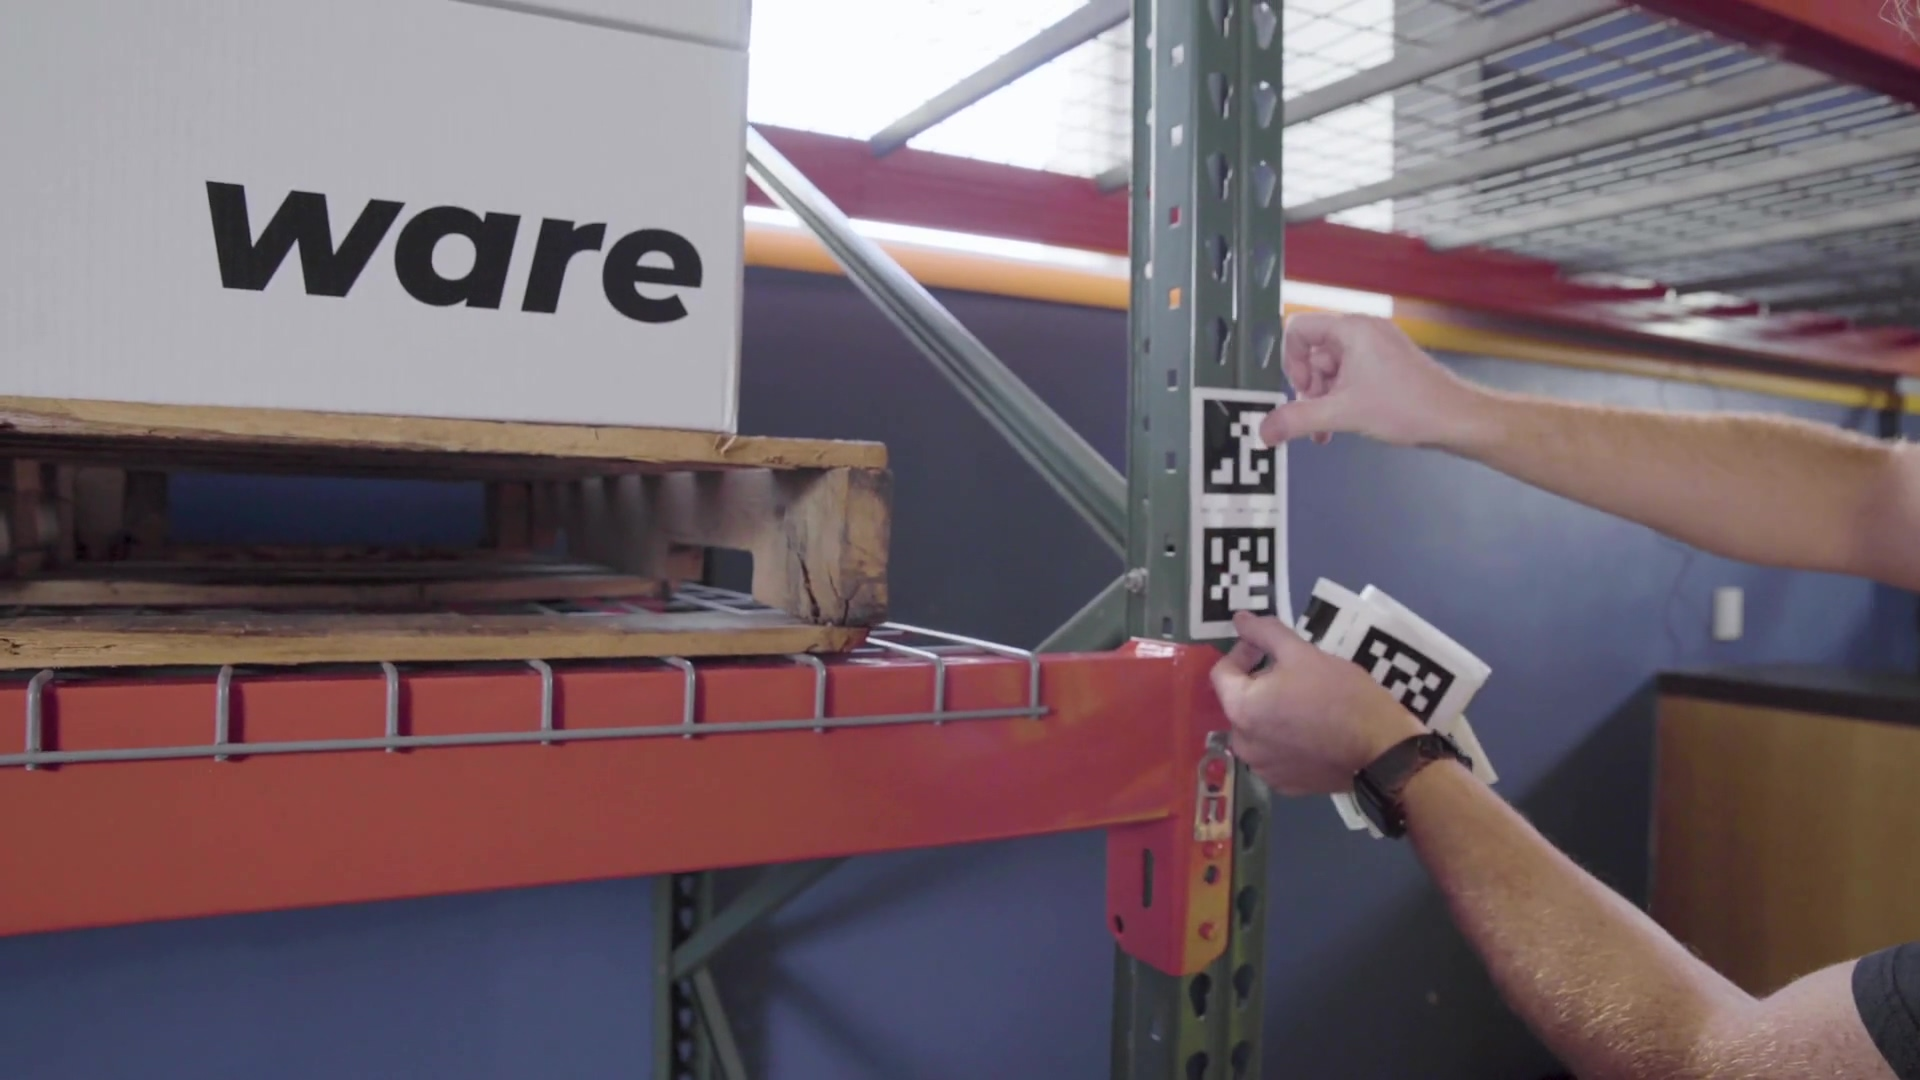 Installing Navigation Markers on Racking for Ware